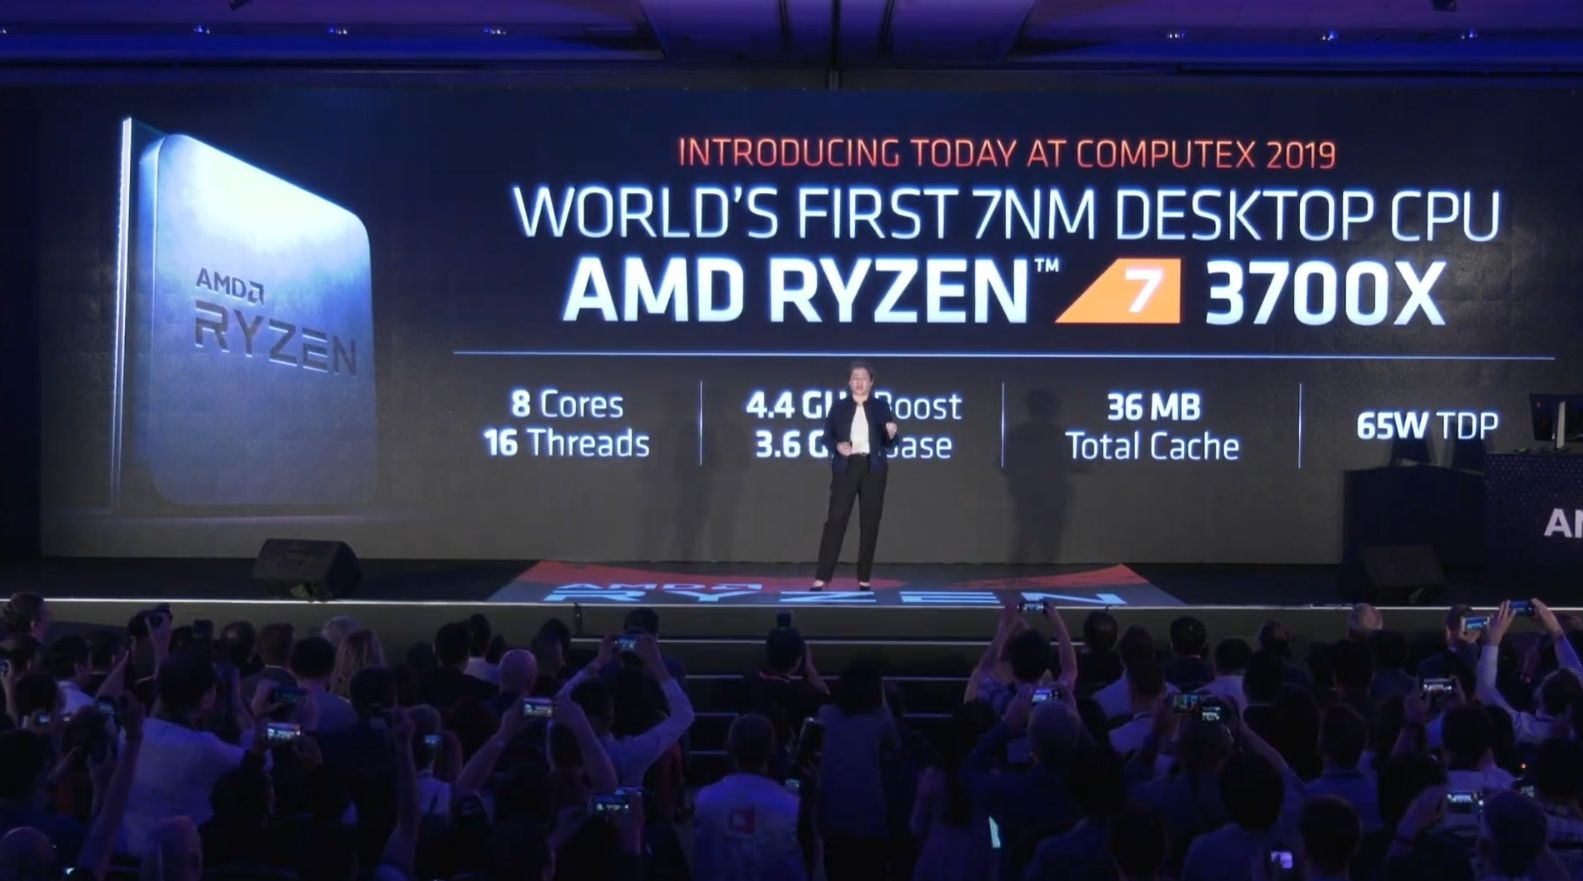 Ryzen -6- 3000 3600X 3700X 3800X 7nm Zen2 Computex 2019 historica conferencia Lisa Su AMD in4 noticias granada